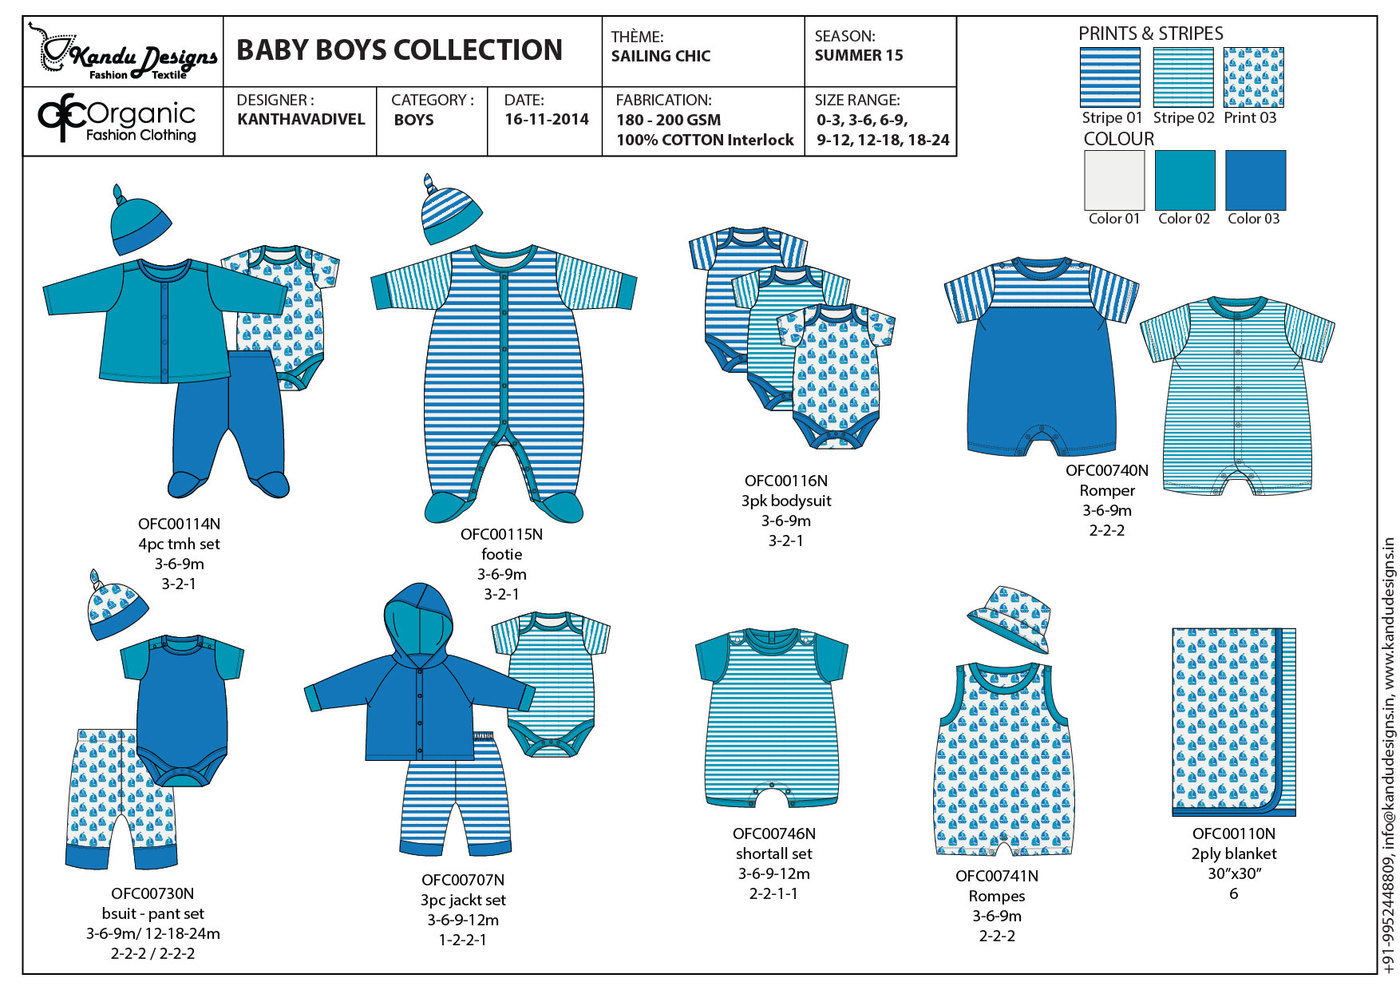 Garment Designing Baby Collection By Kantha Vadivel At Coroflot Com